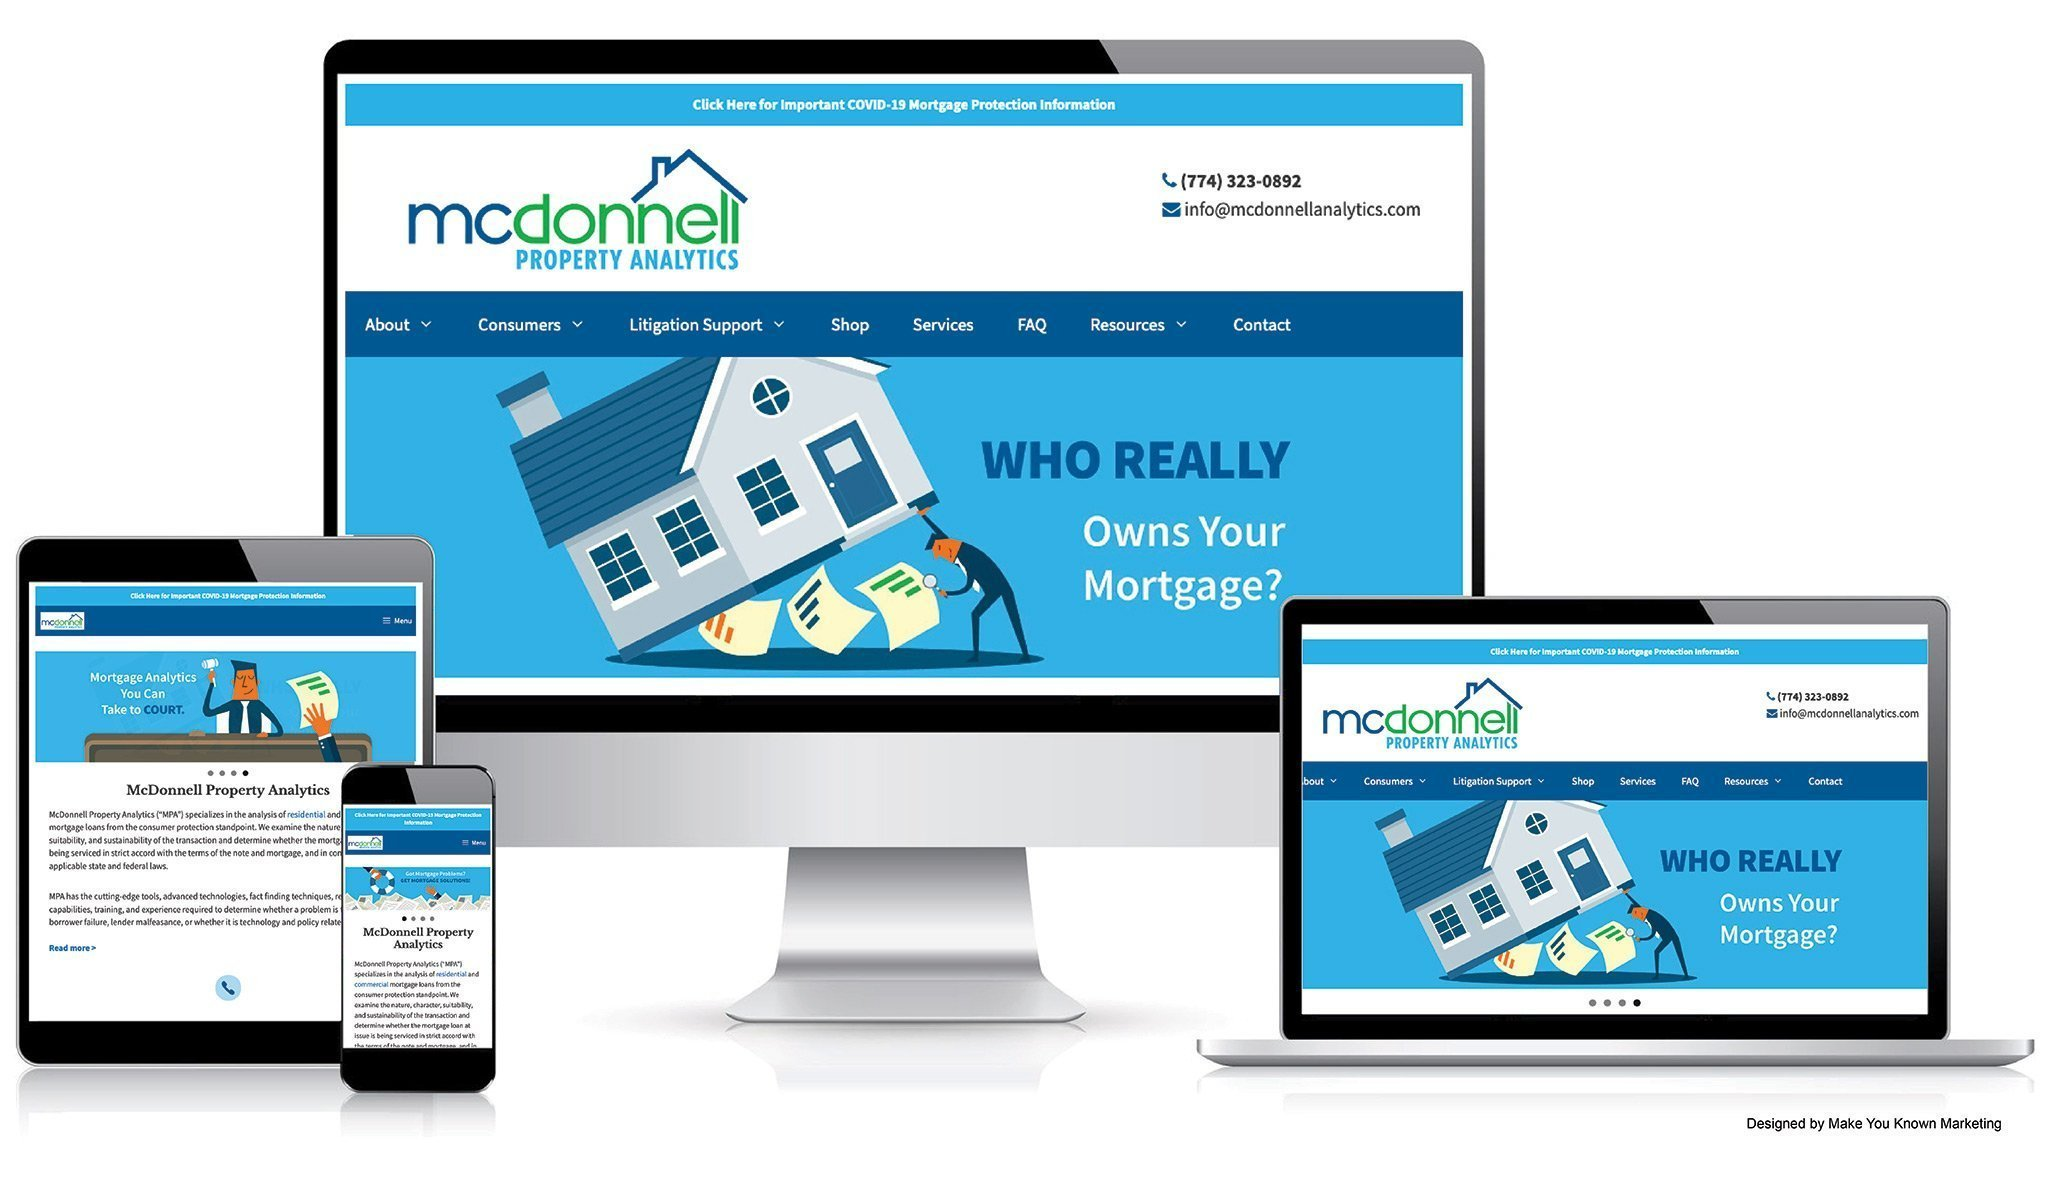 Devadigm developed a new website for McDonnell Property Analytics, mcdonnell analytics dot com. The website was designed by Make You Known Marketing.